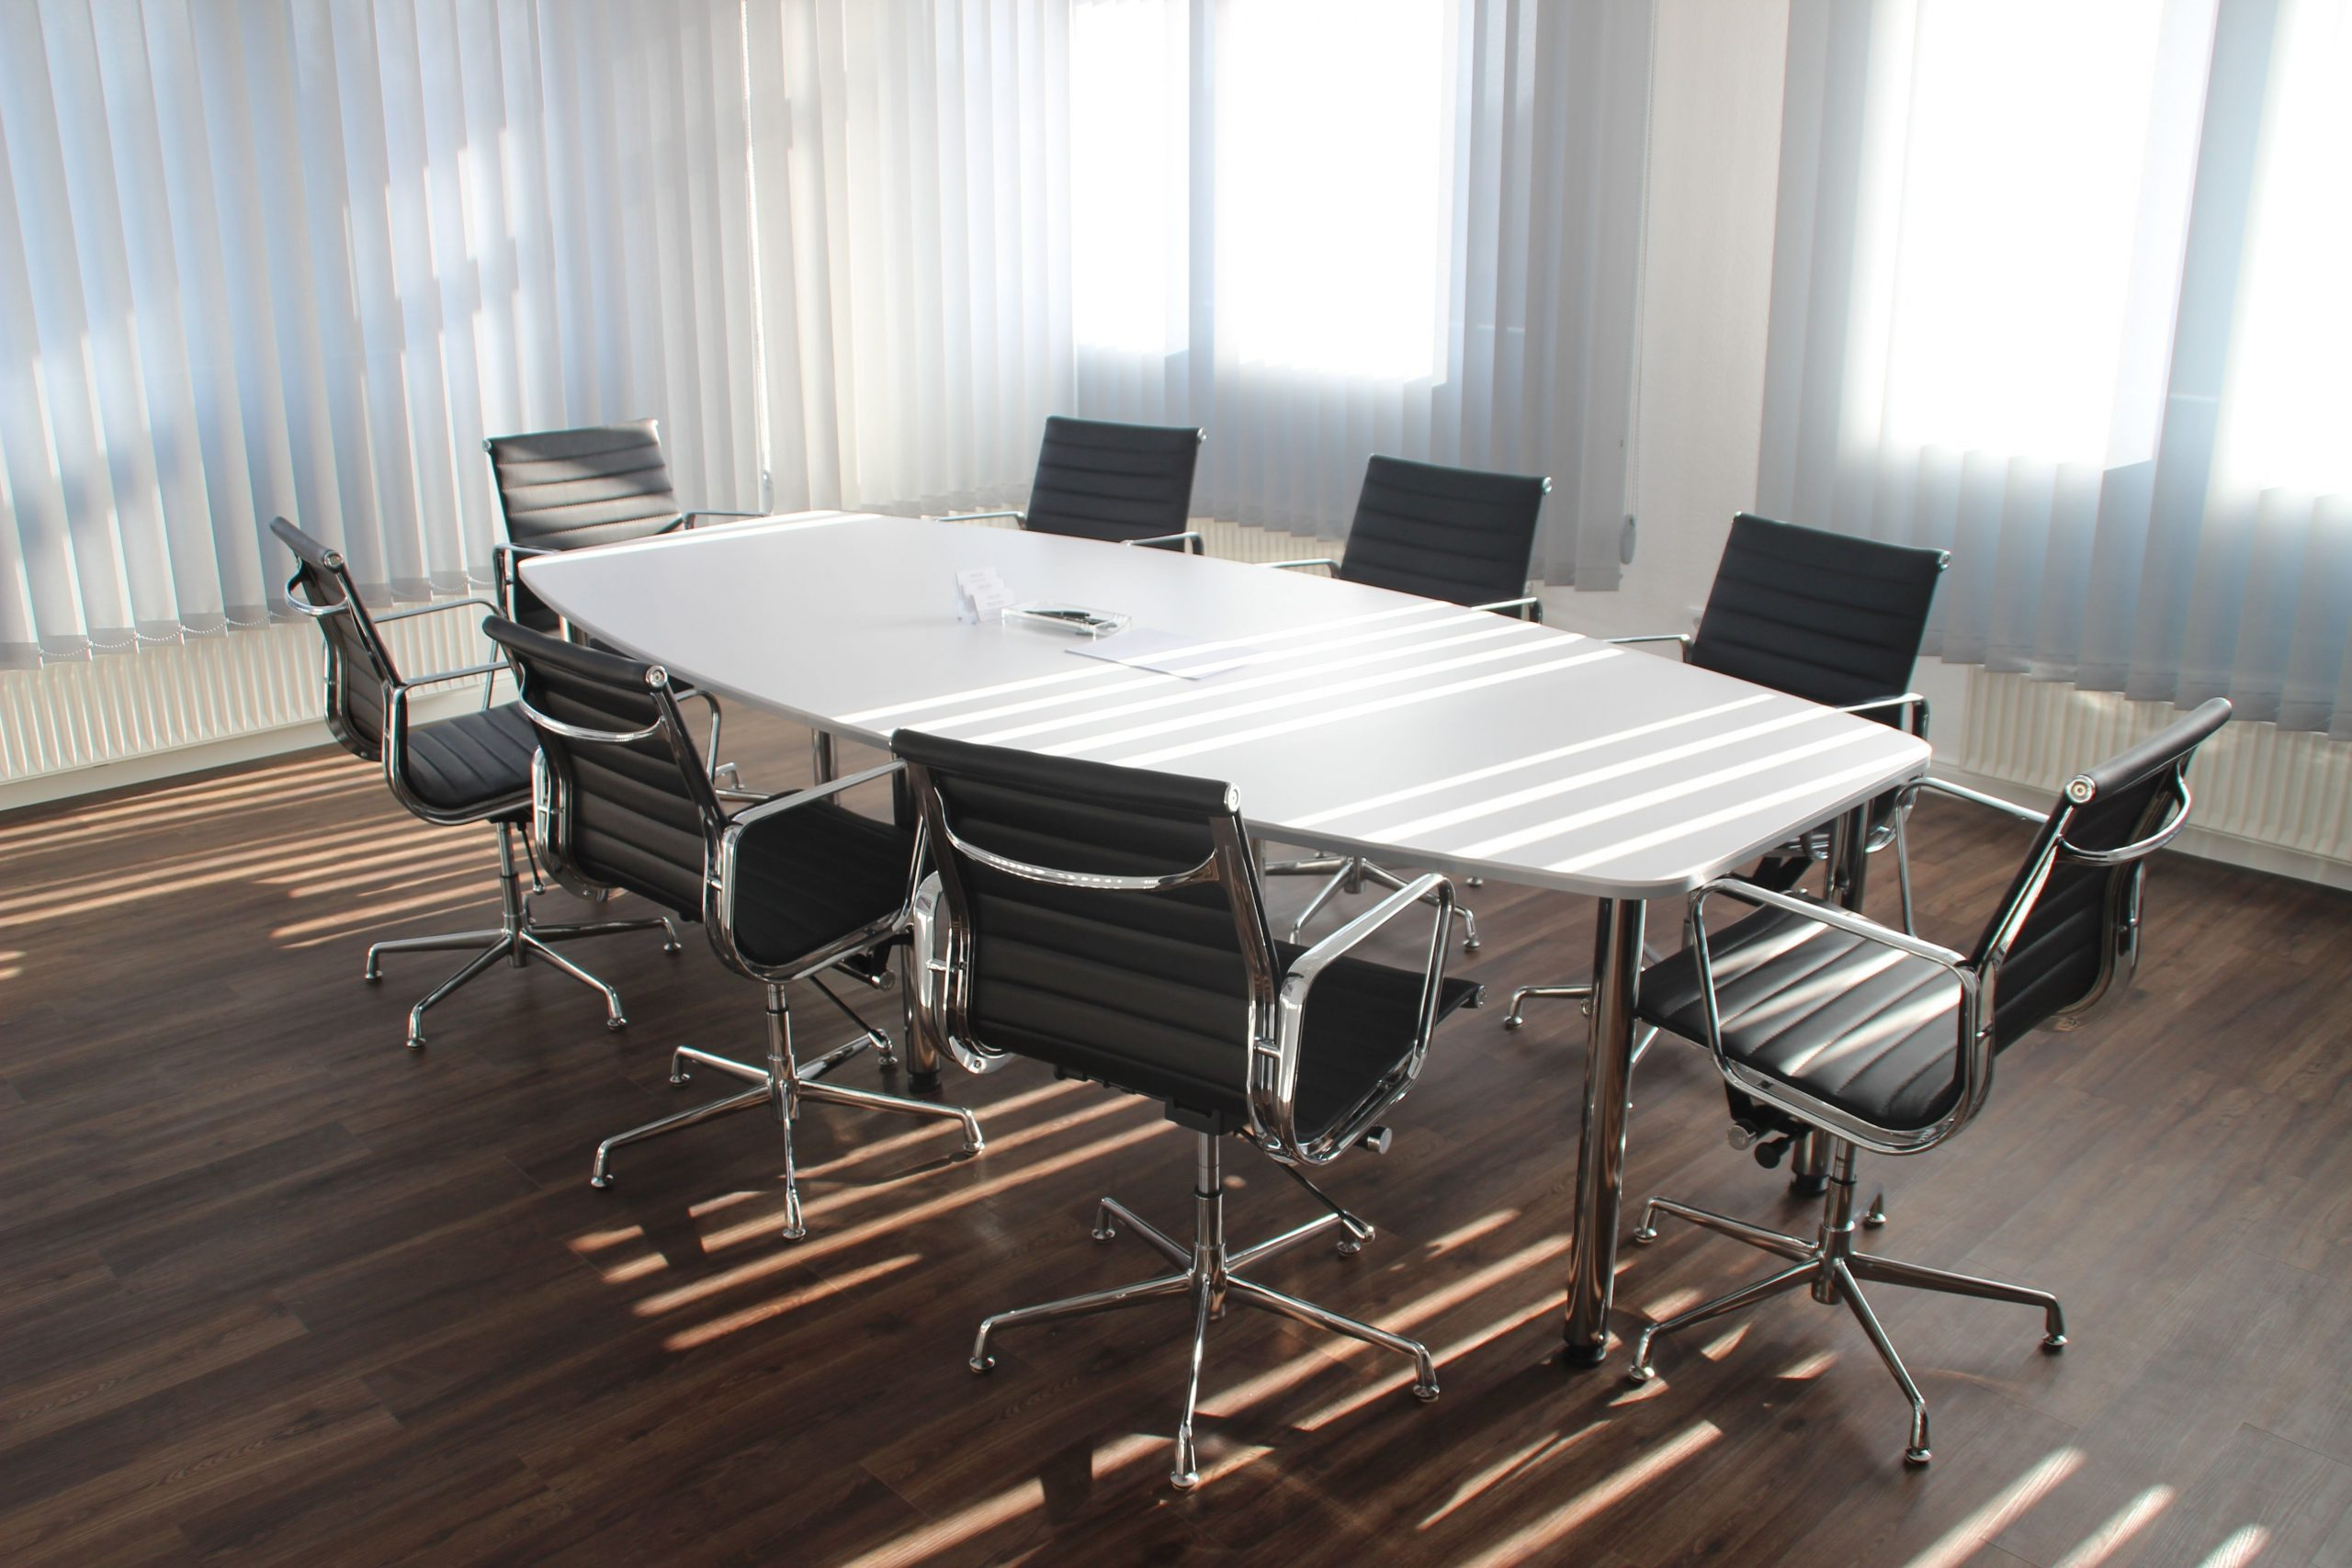 How to Keep a Top Producer From Causing Agency Turnover Problems